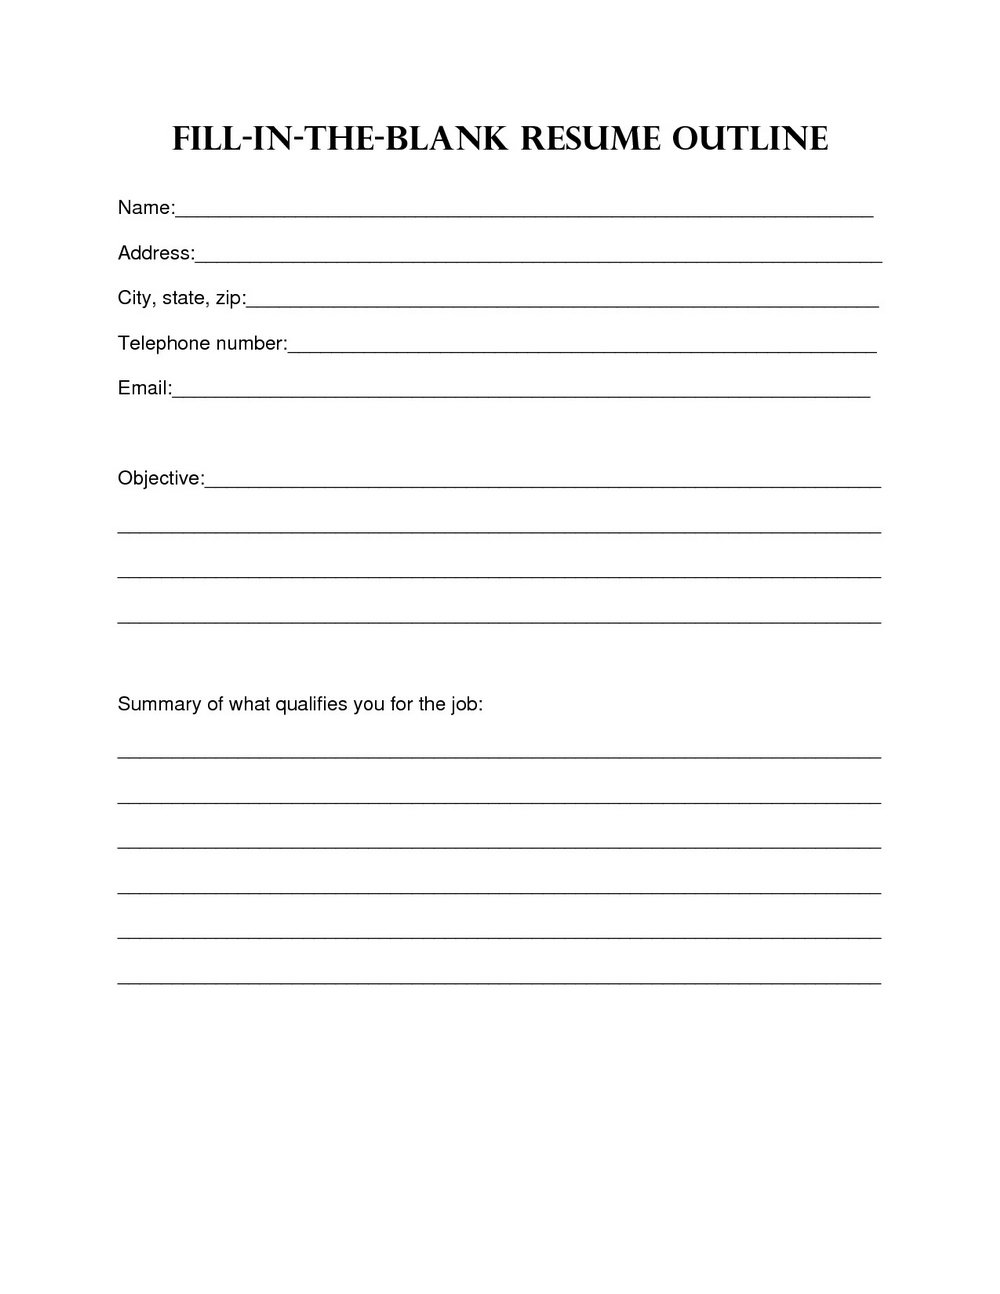 Blank Cover Letter Template